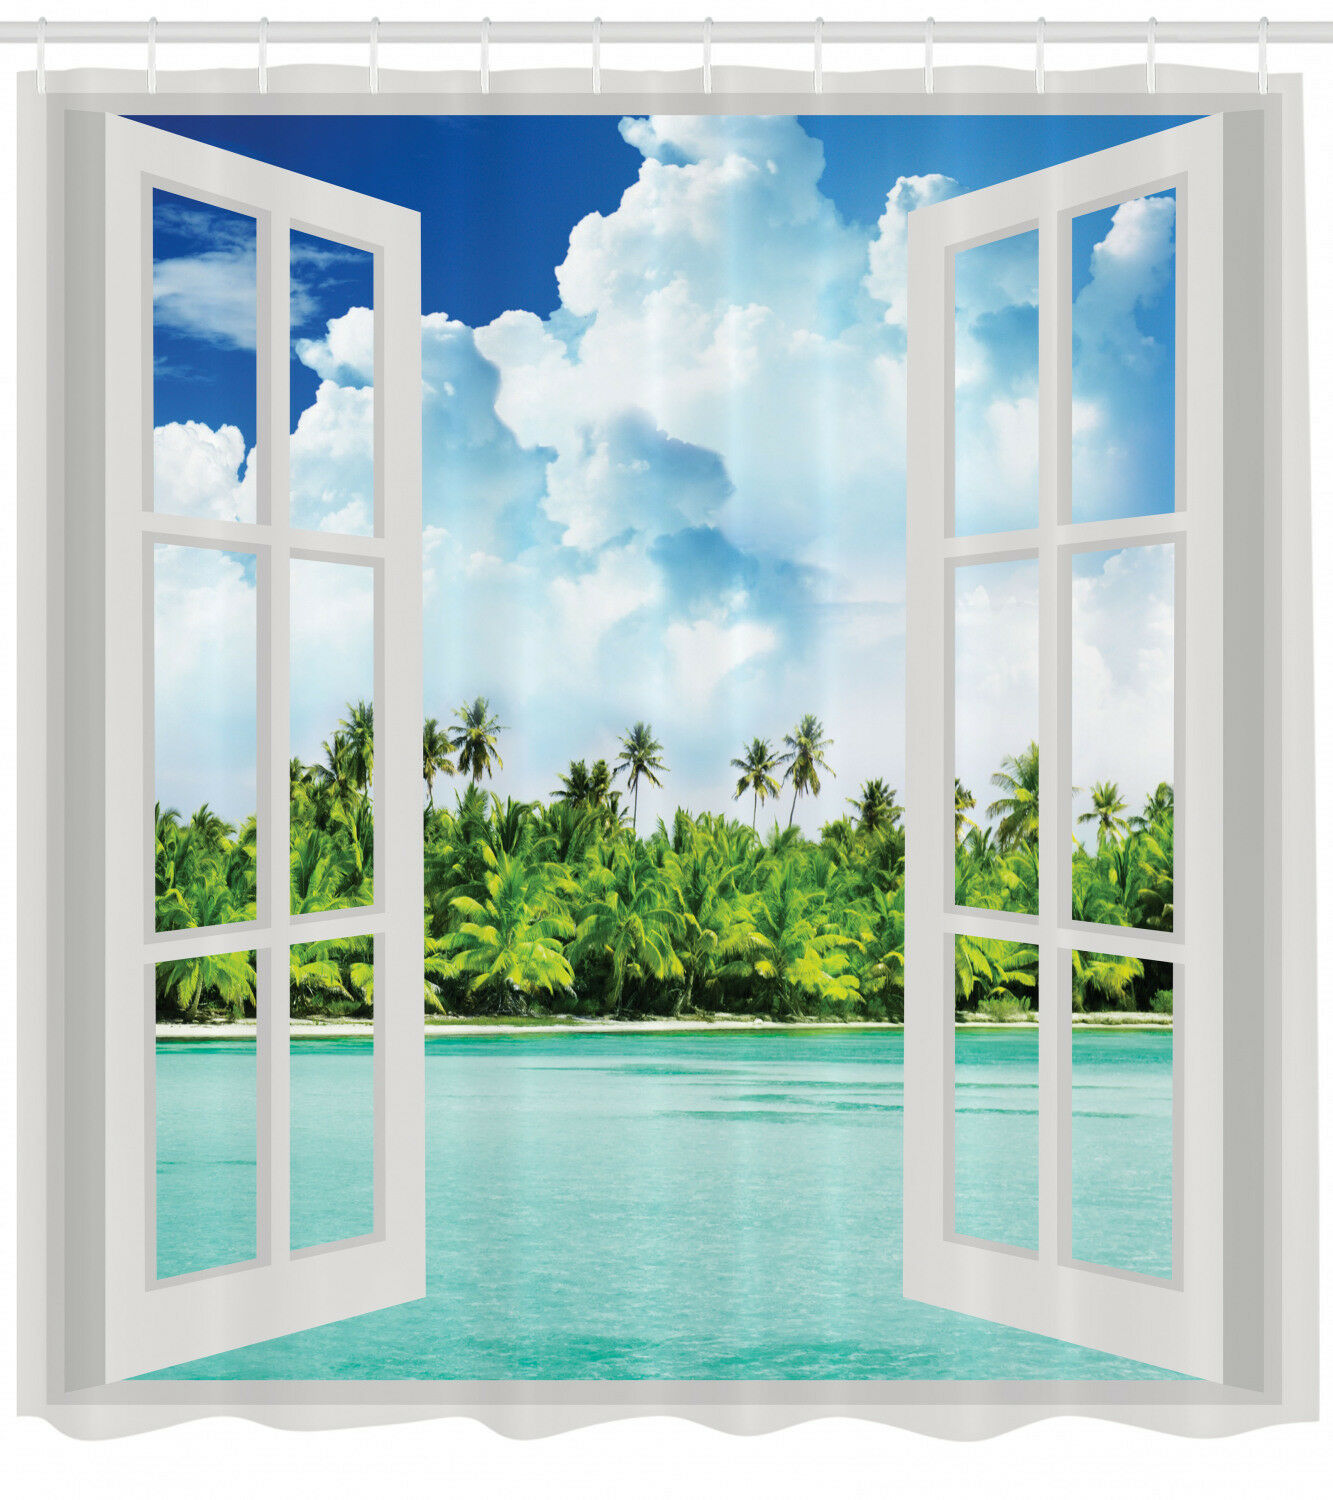 Ocean Decor Palm Tree Tropical Island Beach Paradise Scene Fabric Shower Curtain